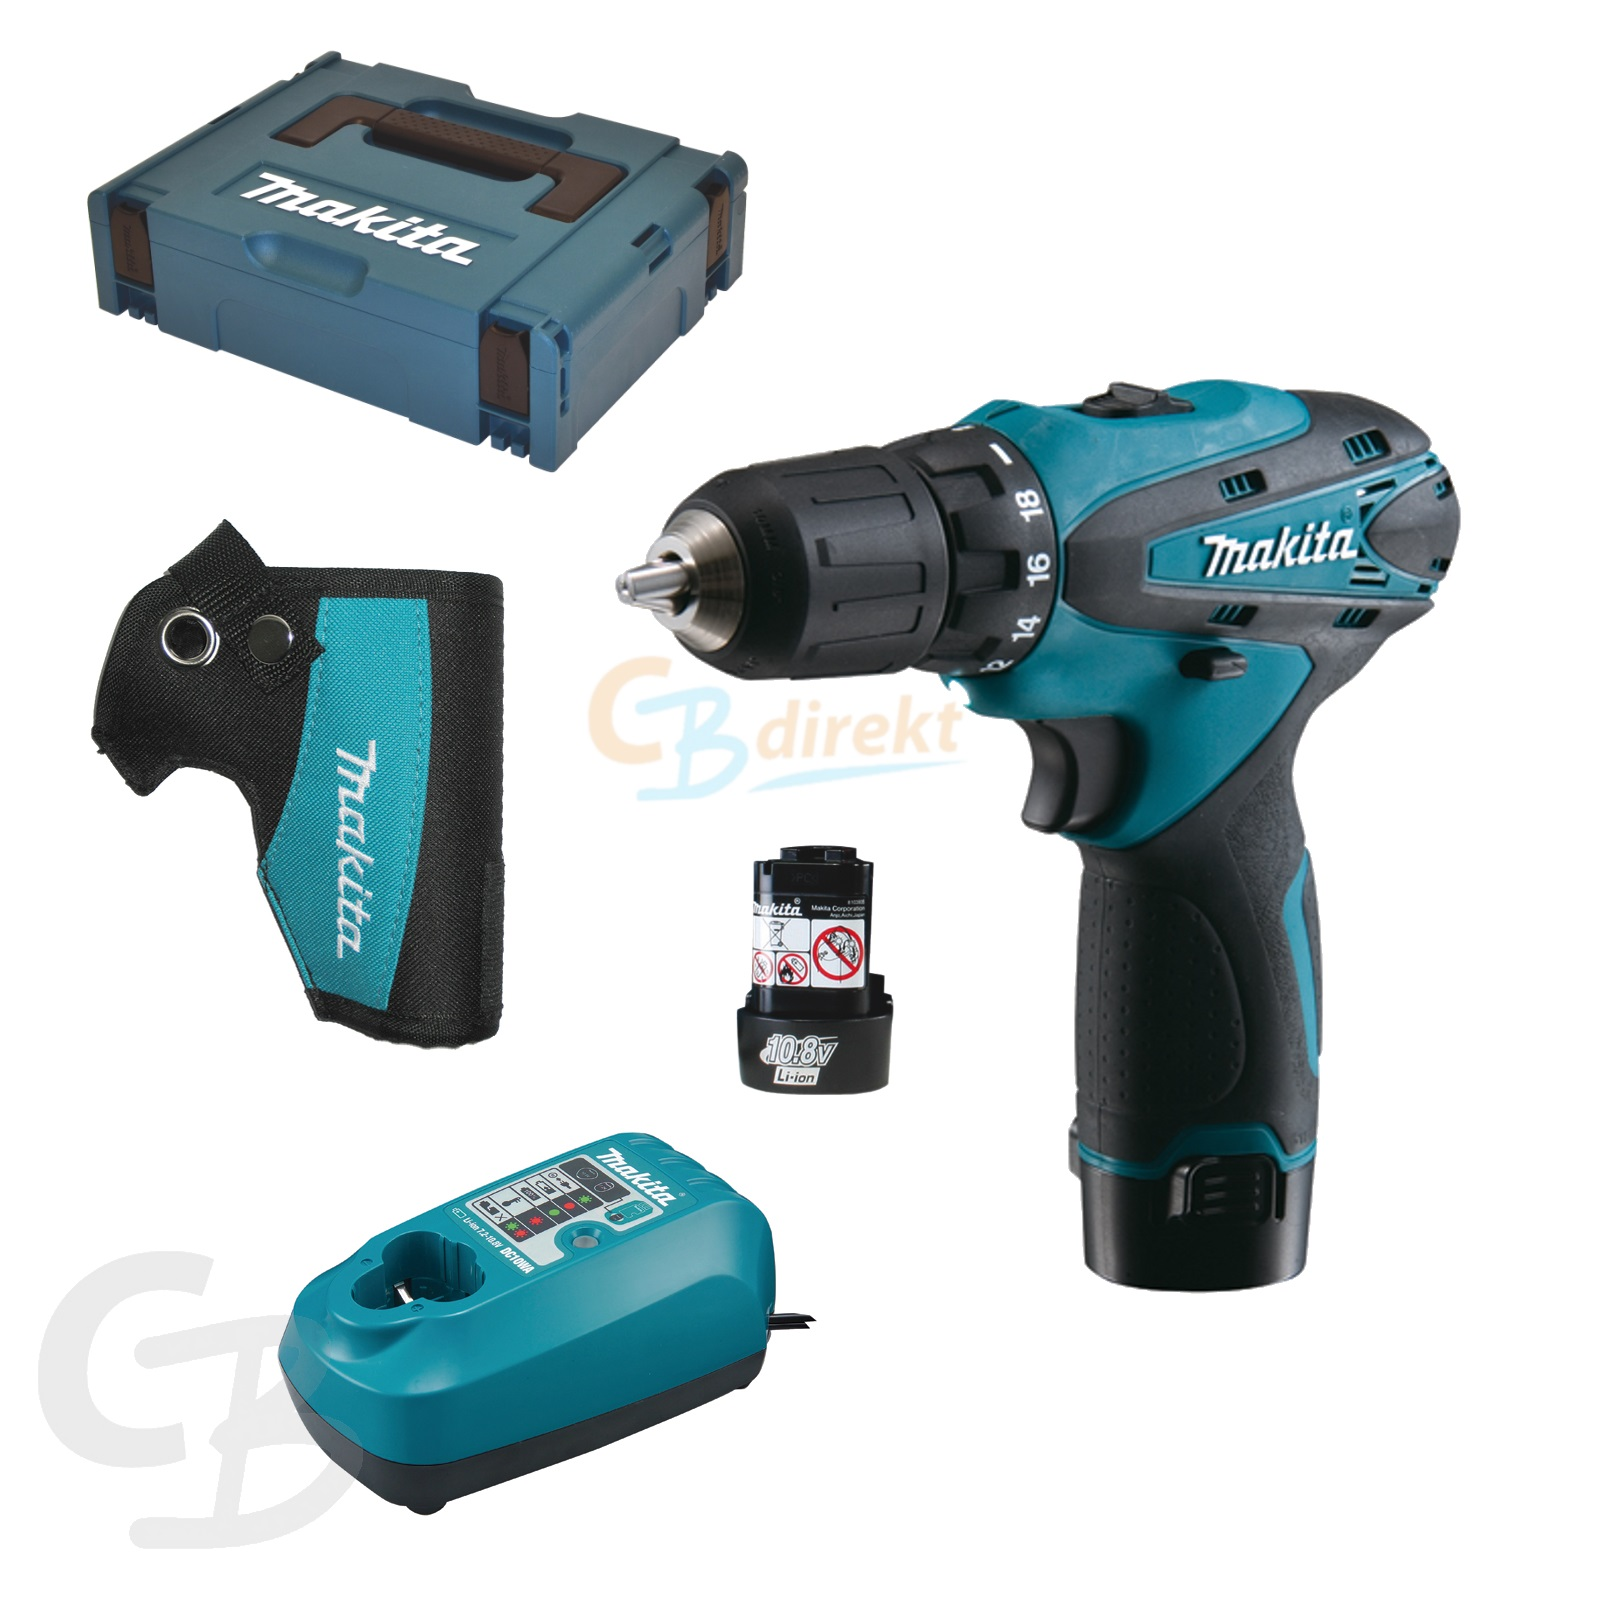 Makita DF330DWJ @ CBdirekt eBay WOW